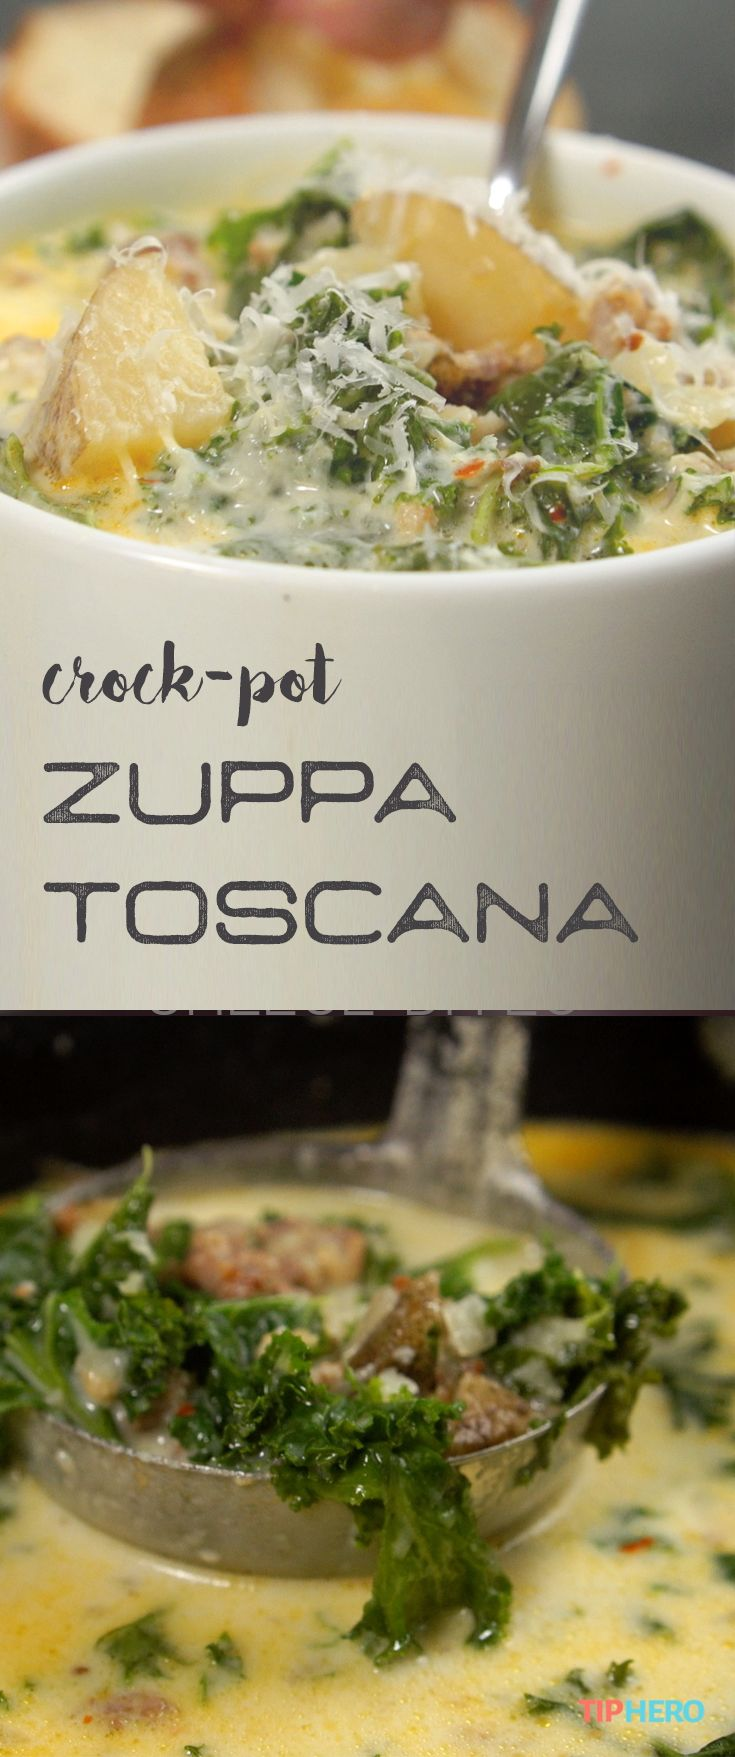 Crock-Pot Zuppa Toscana Recipe | Craving a super rich, potato and sausage soup? Pull out the slow-cooker and fire up this delicious Zuppa Toscana. It's easy to make and SO satisfying. Click for the recipe and how-to video.  #soups #stews #easymeals #dinnertime #lunchtime